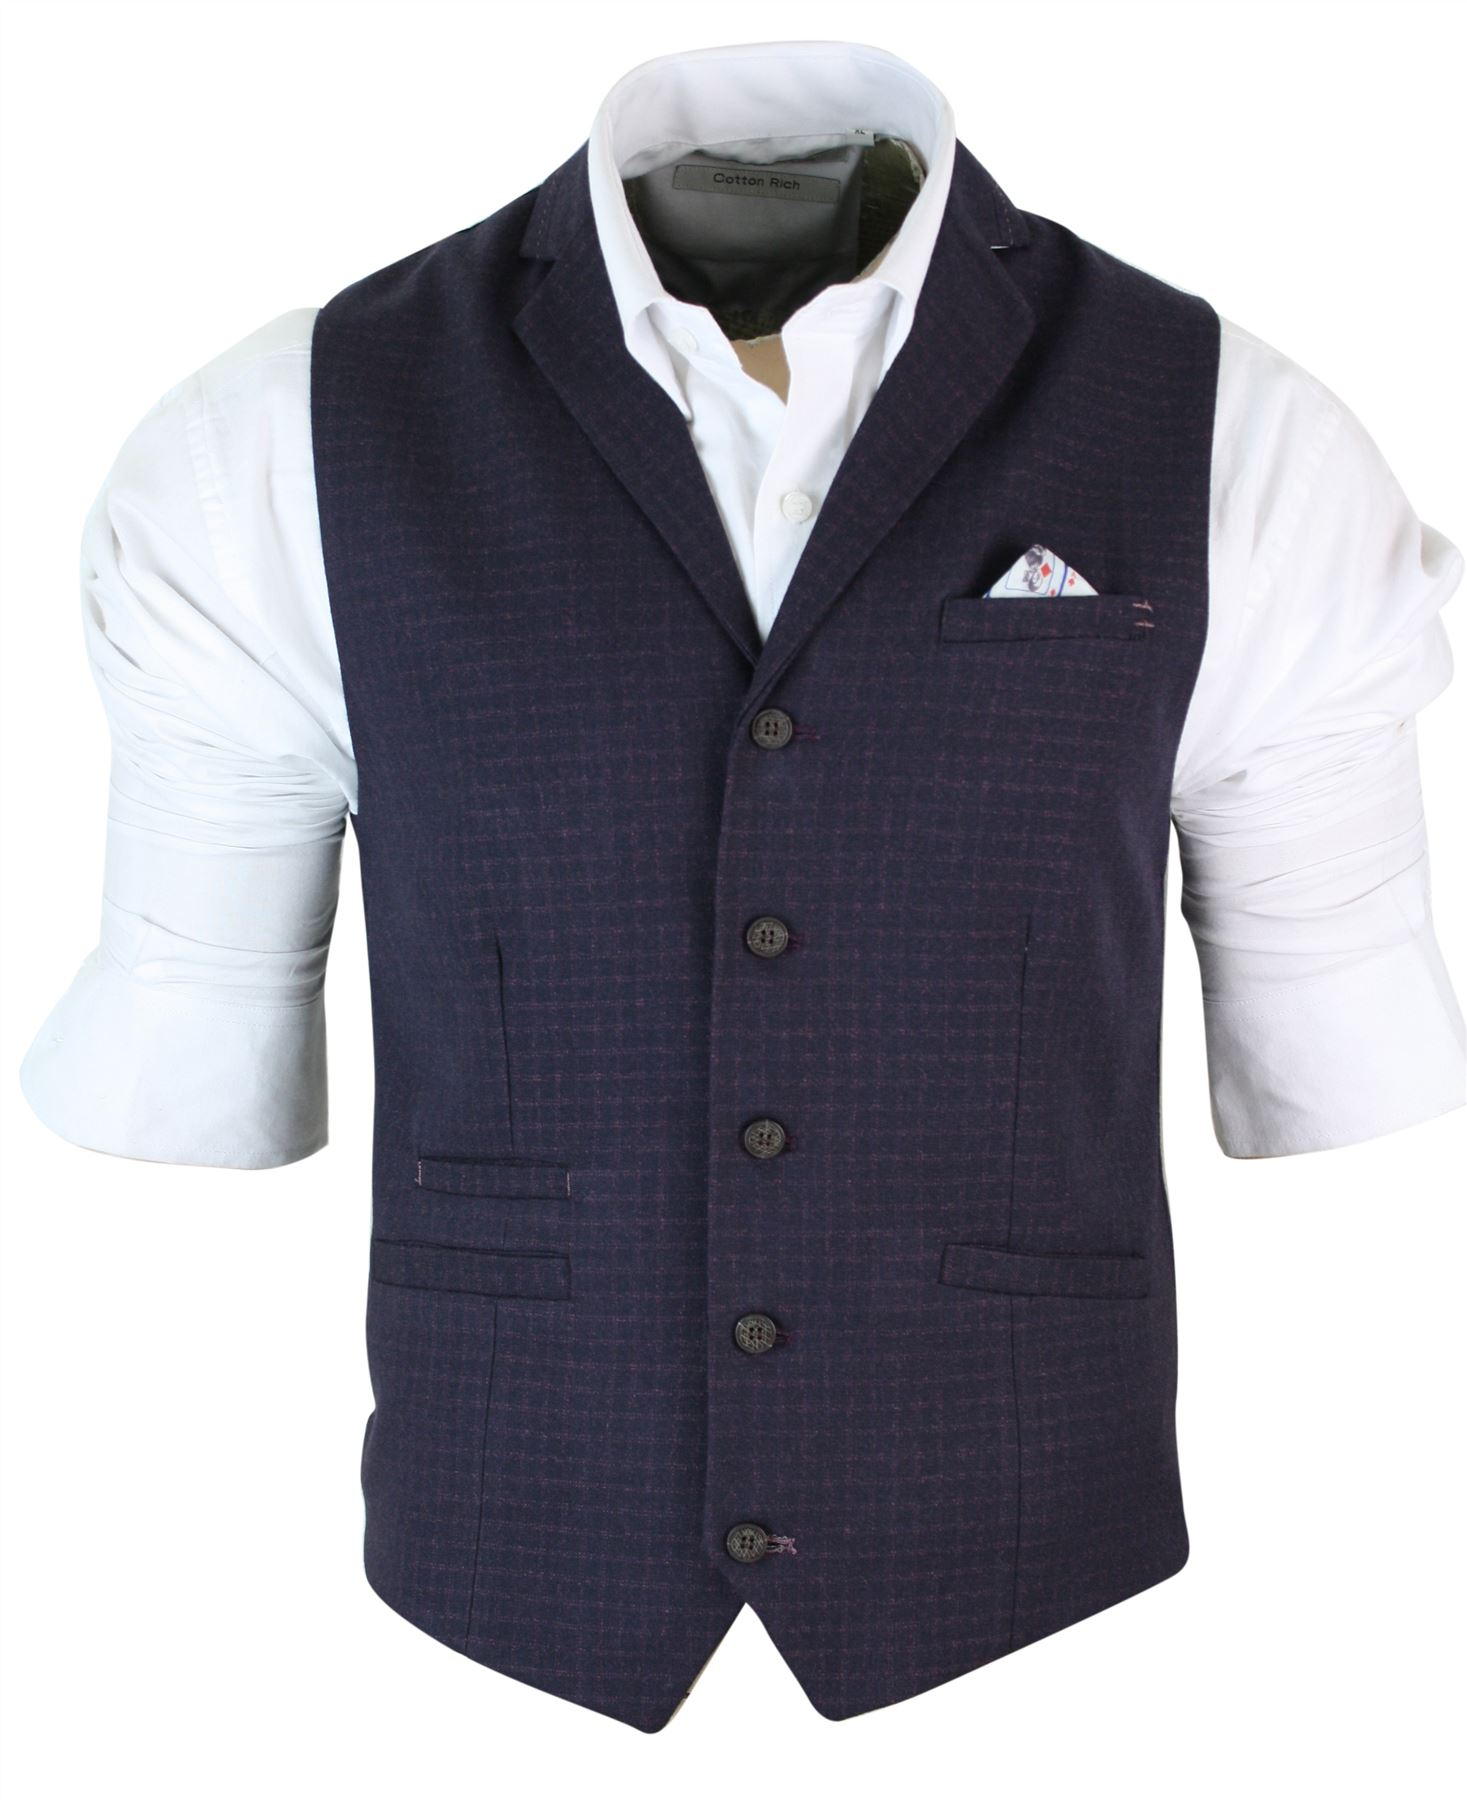 Give your formal look a stylish edge with a waistcoat from Matalan, with free click & collect. Wear with a suit or without a jacket for a modern twist.